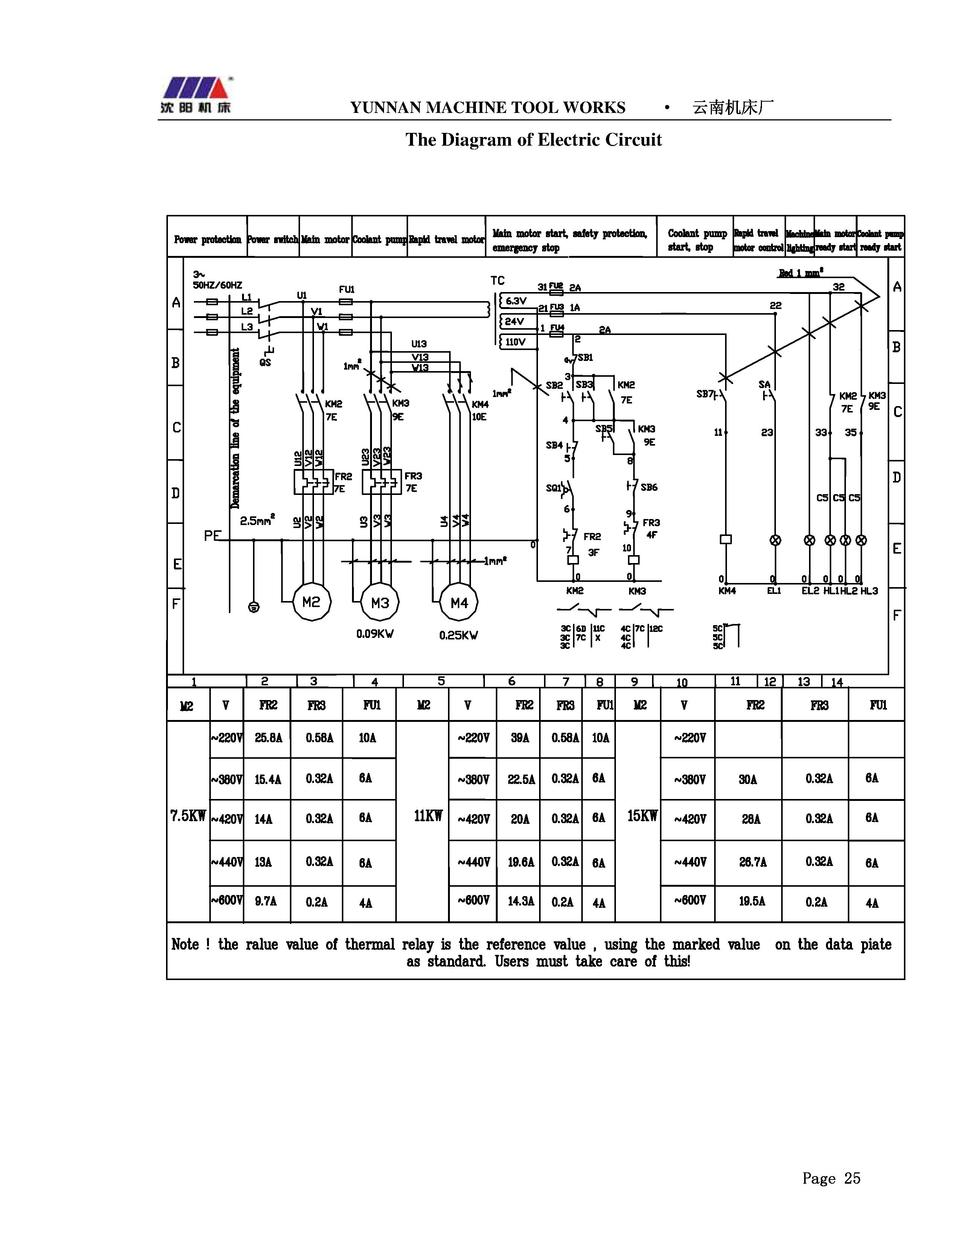 medium resolution of yunnan machine tool works the diagram of electric